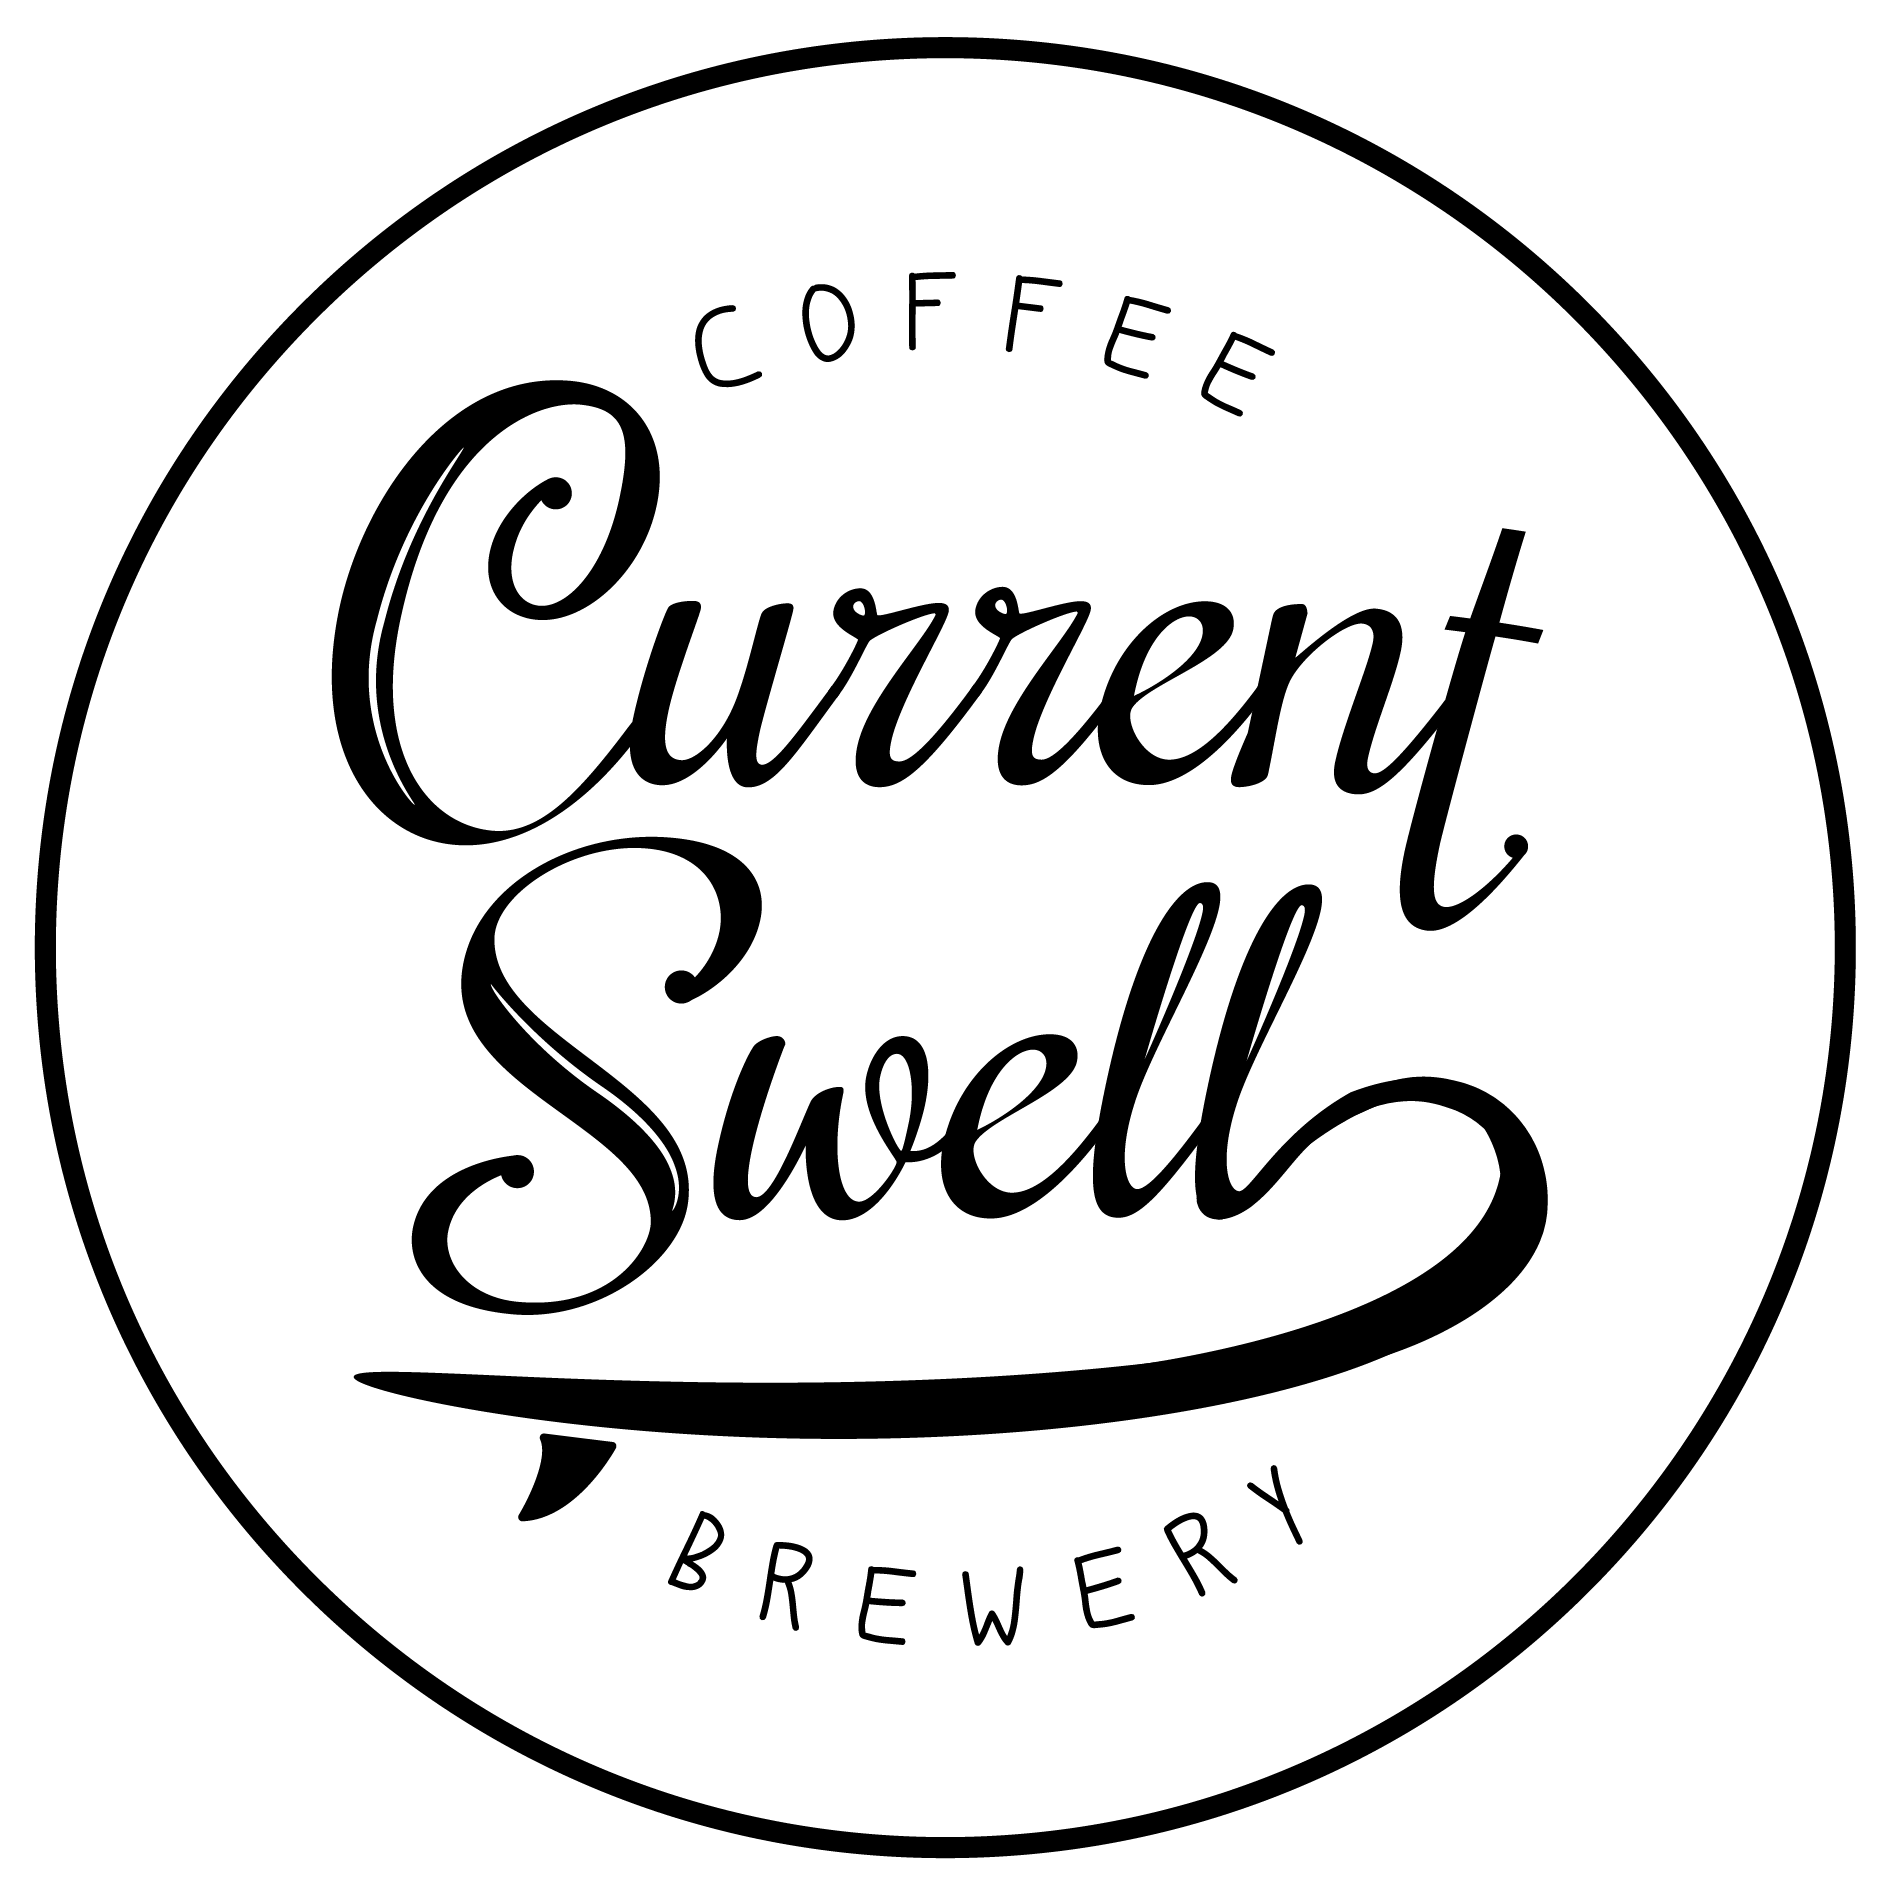 Current swell logo black copy 2 current swell logo black copy 2 wiring